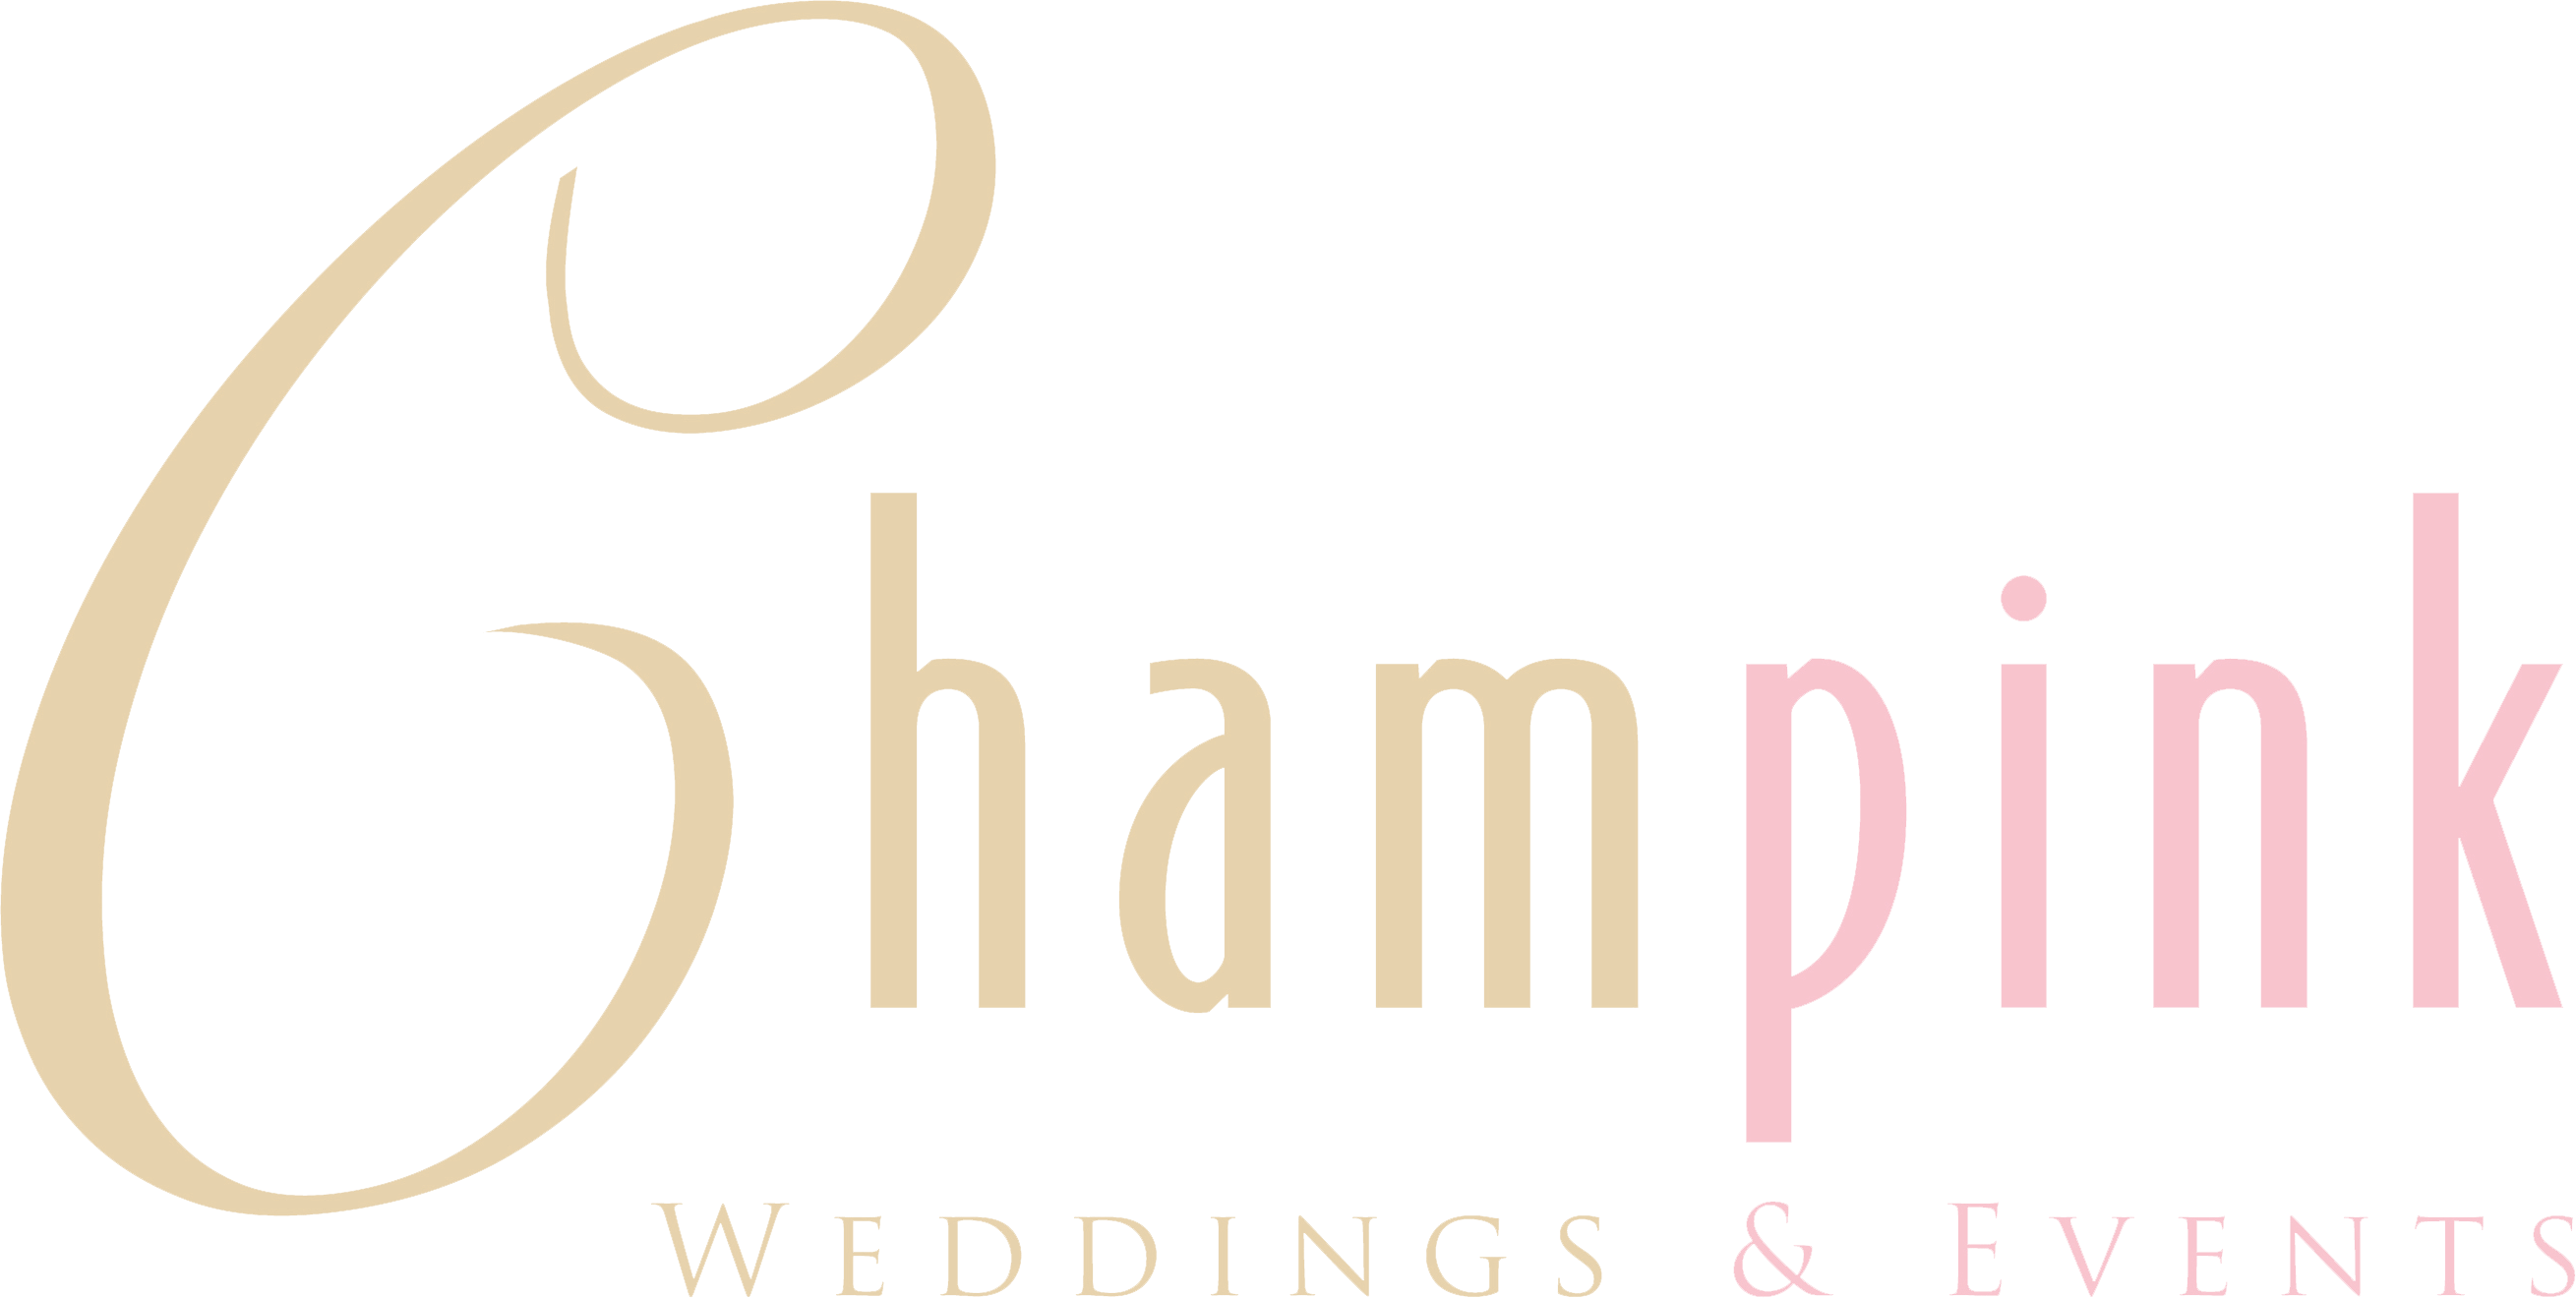 Champink Events & Weddings